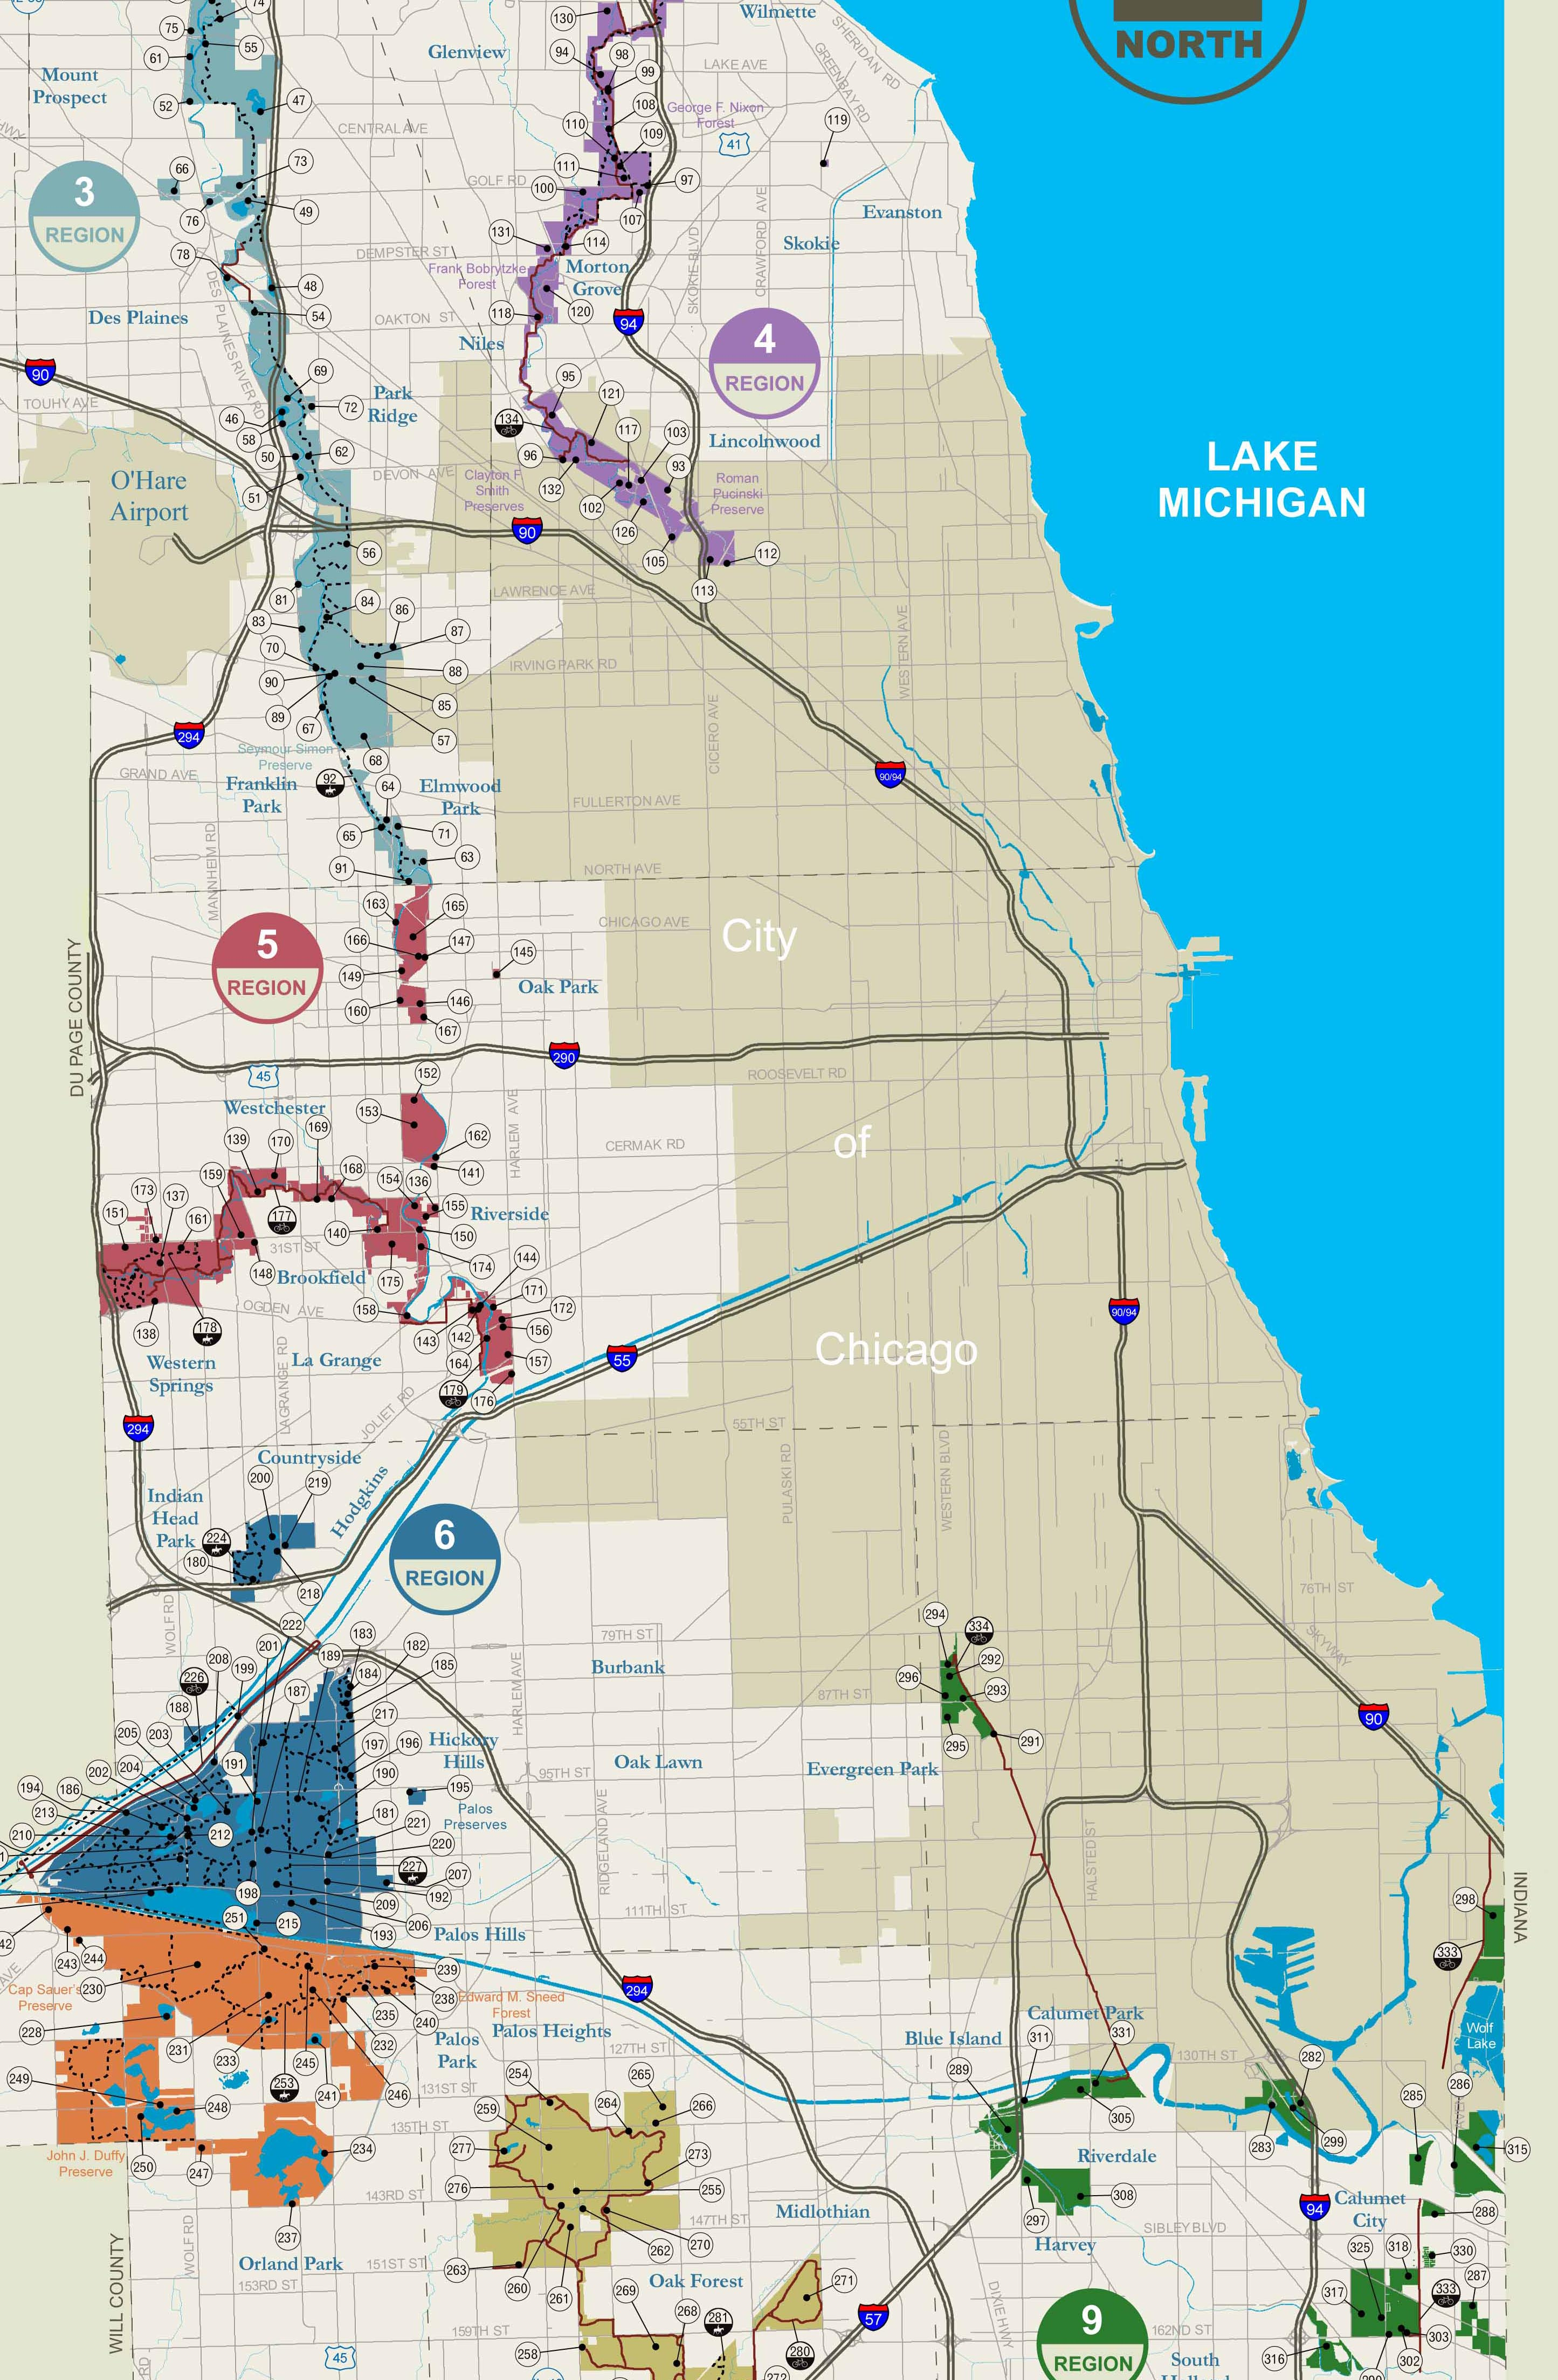 Map of the Forest Preserve properties in and around Chicago. (Courtesy Greg Spyreas)